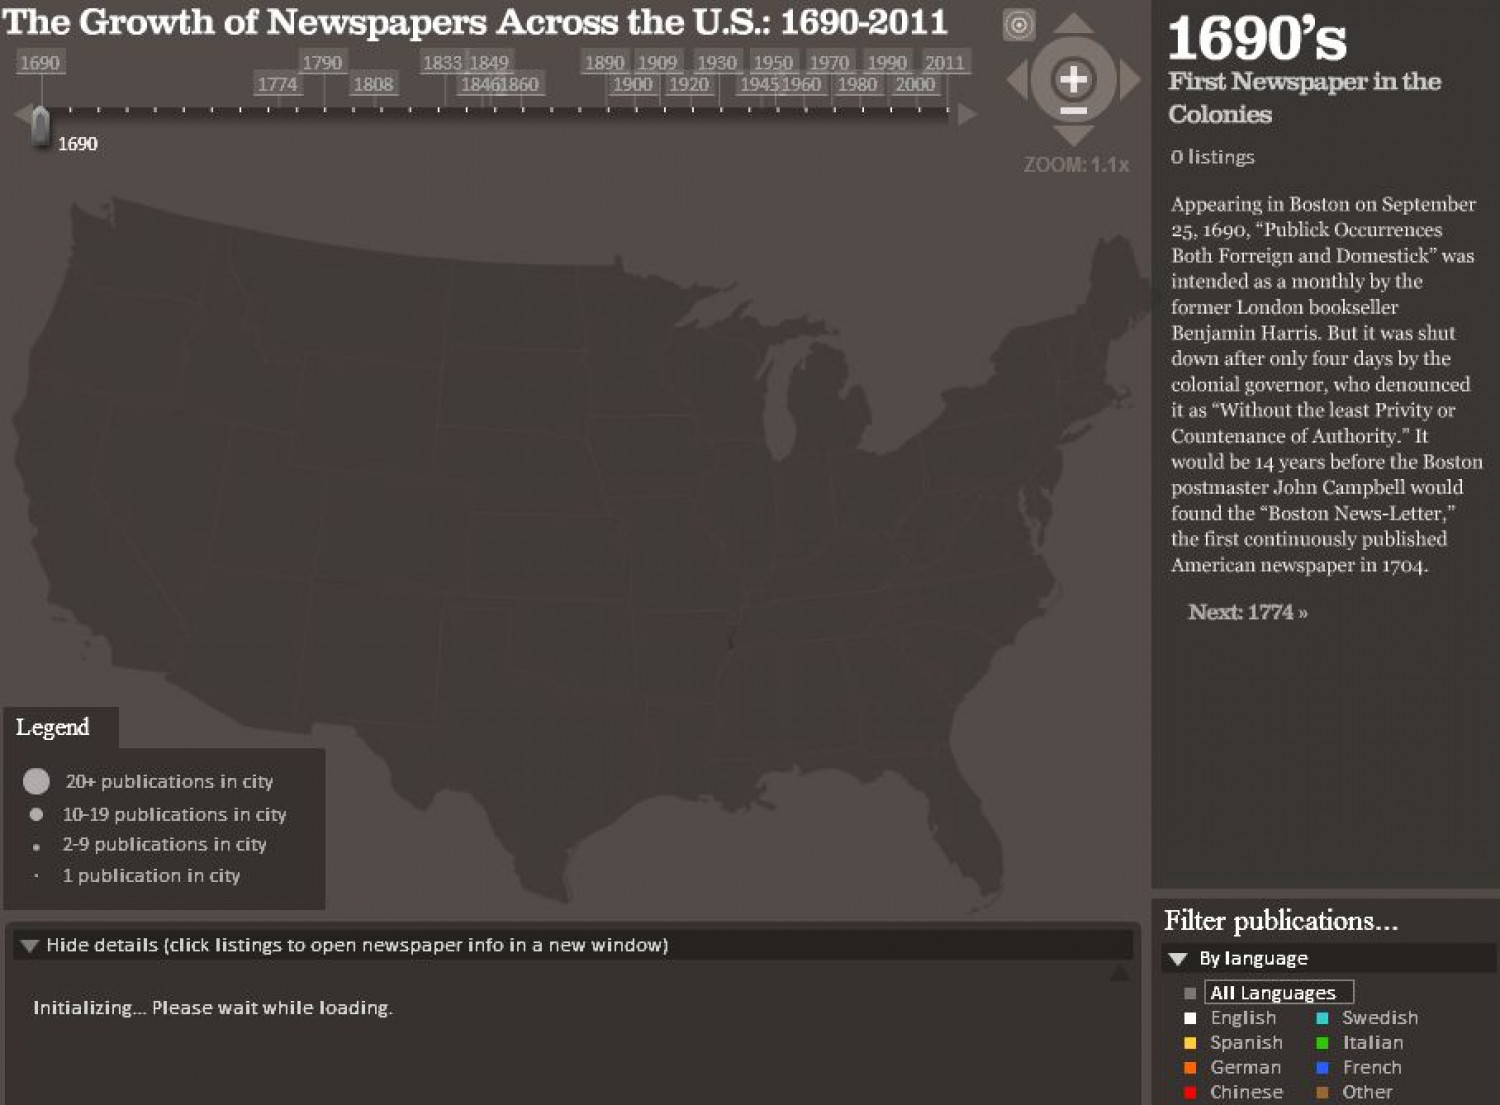 The Growth of Newspapers Across The US Infographic